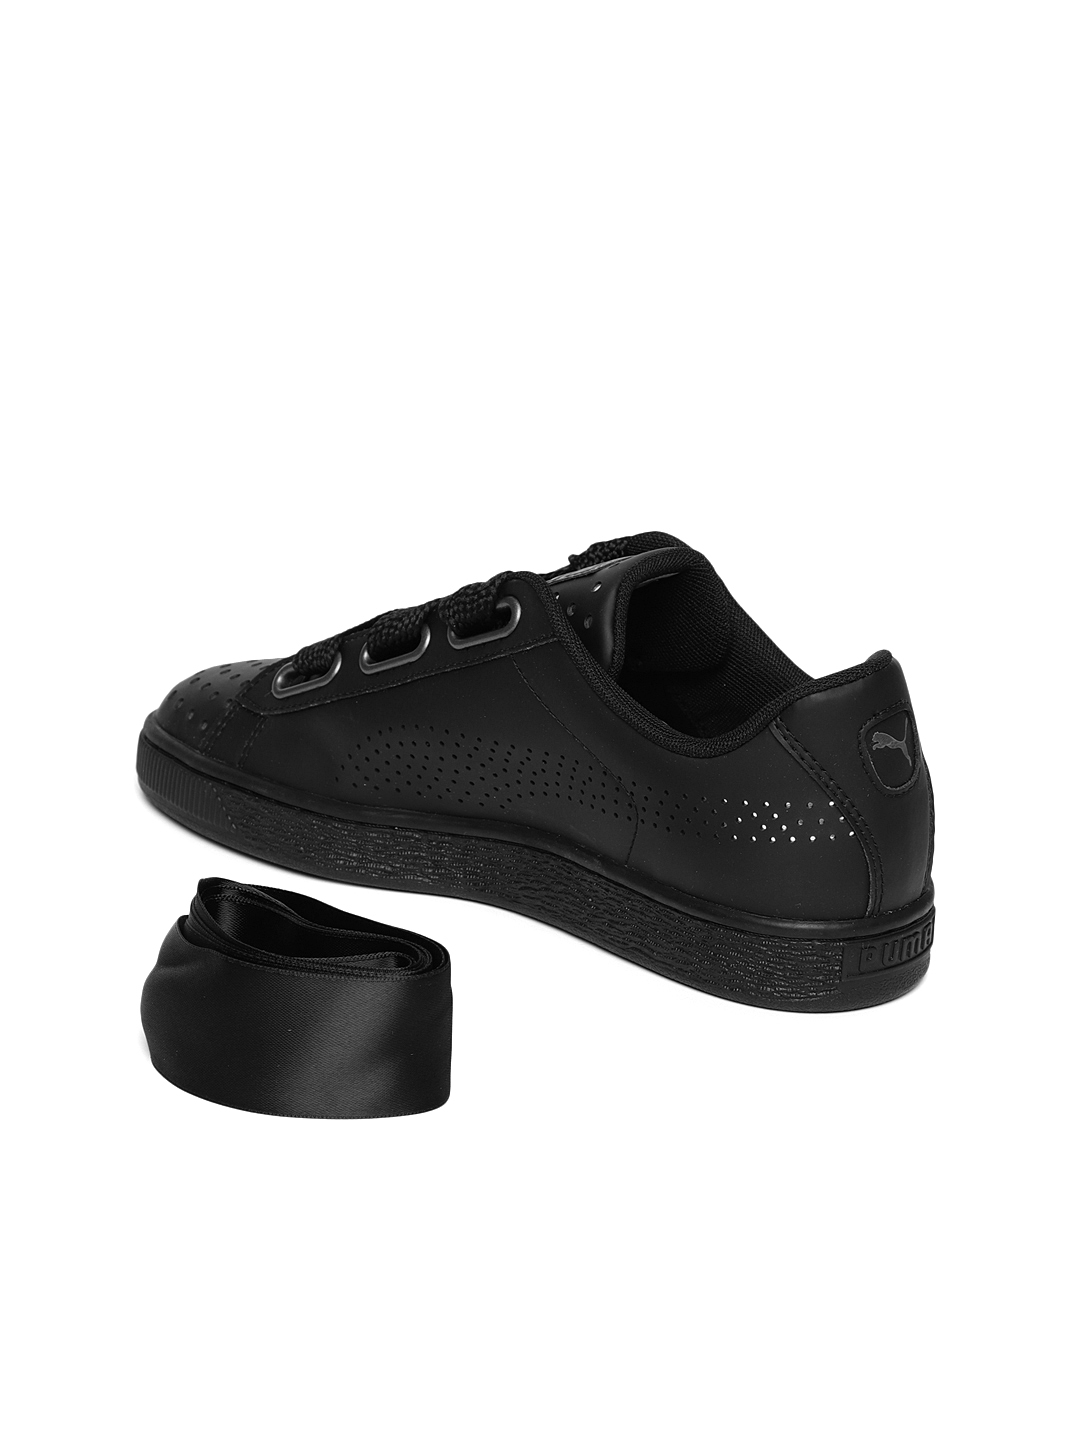 54d1c9ab61a5a2 Buy Puma Women Black Basket Heart Ath Lux Sneakers - Casual Shoes ...